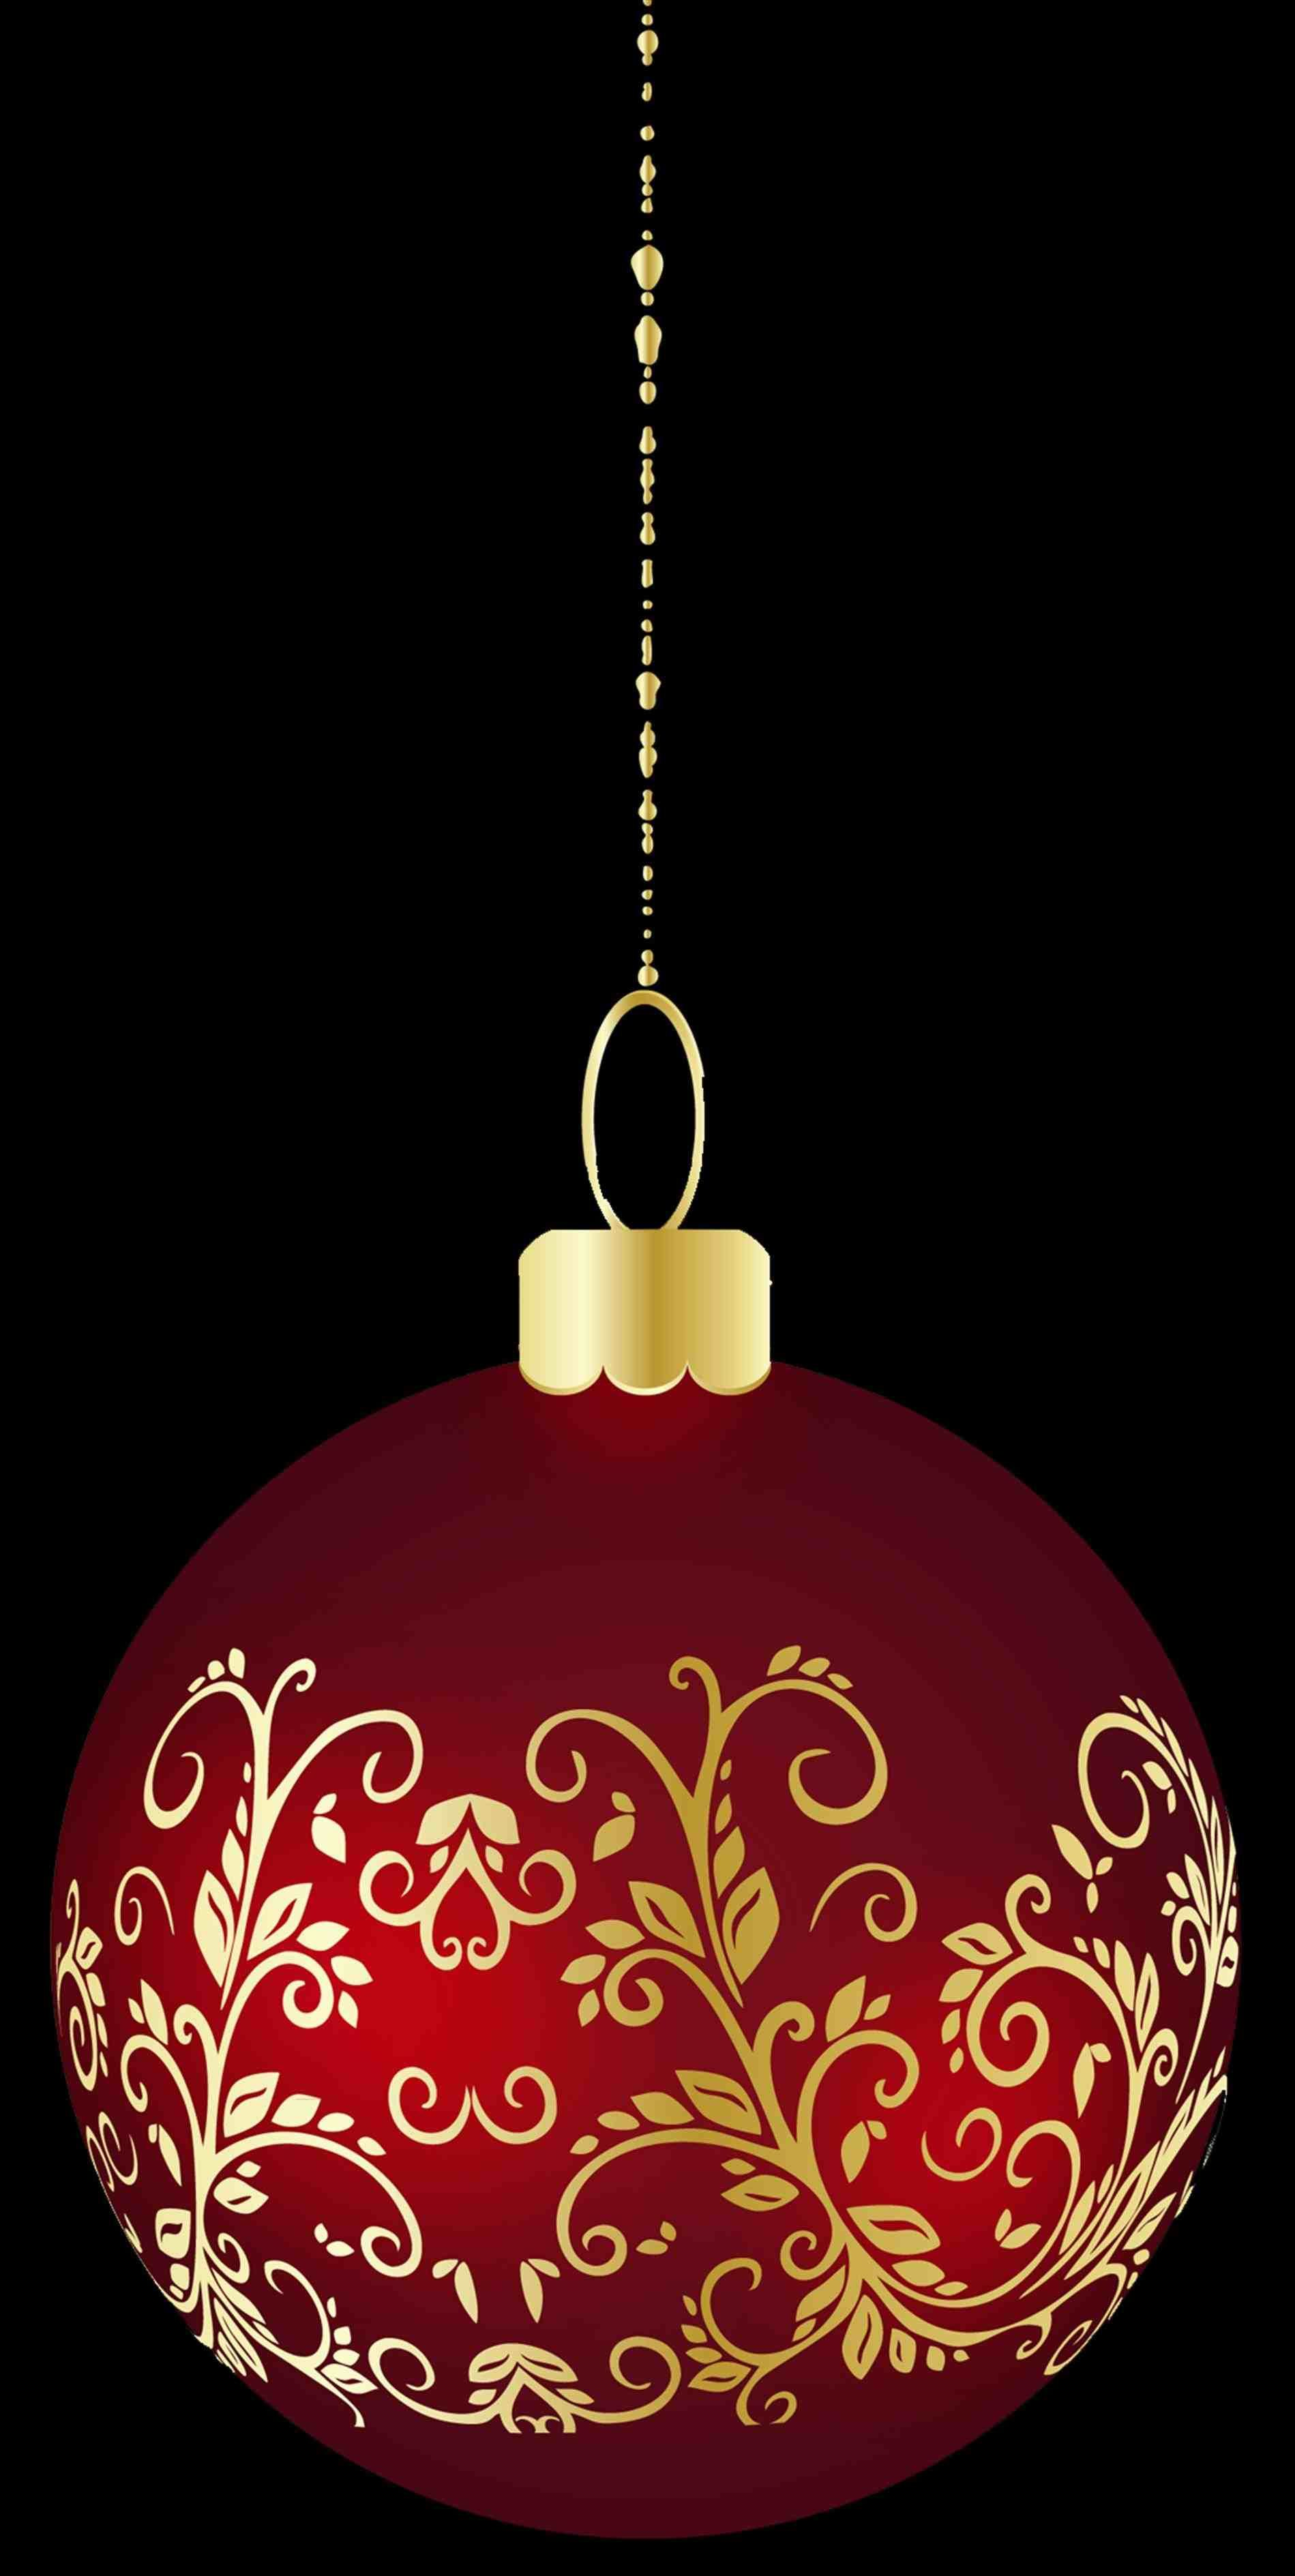 New Post christmas ball ornament template | xmast | Pinterest ...